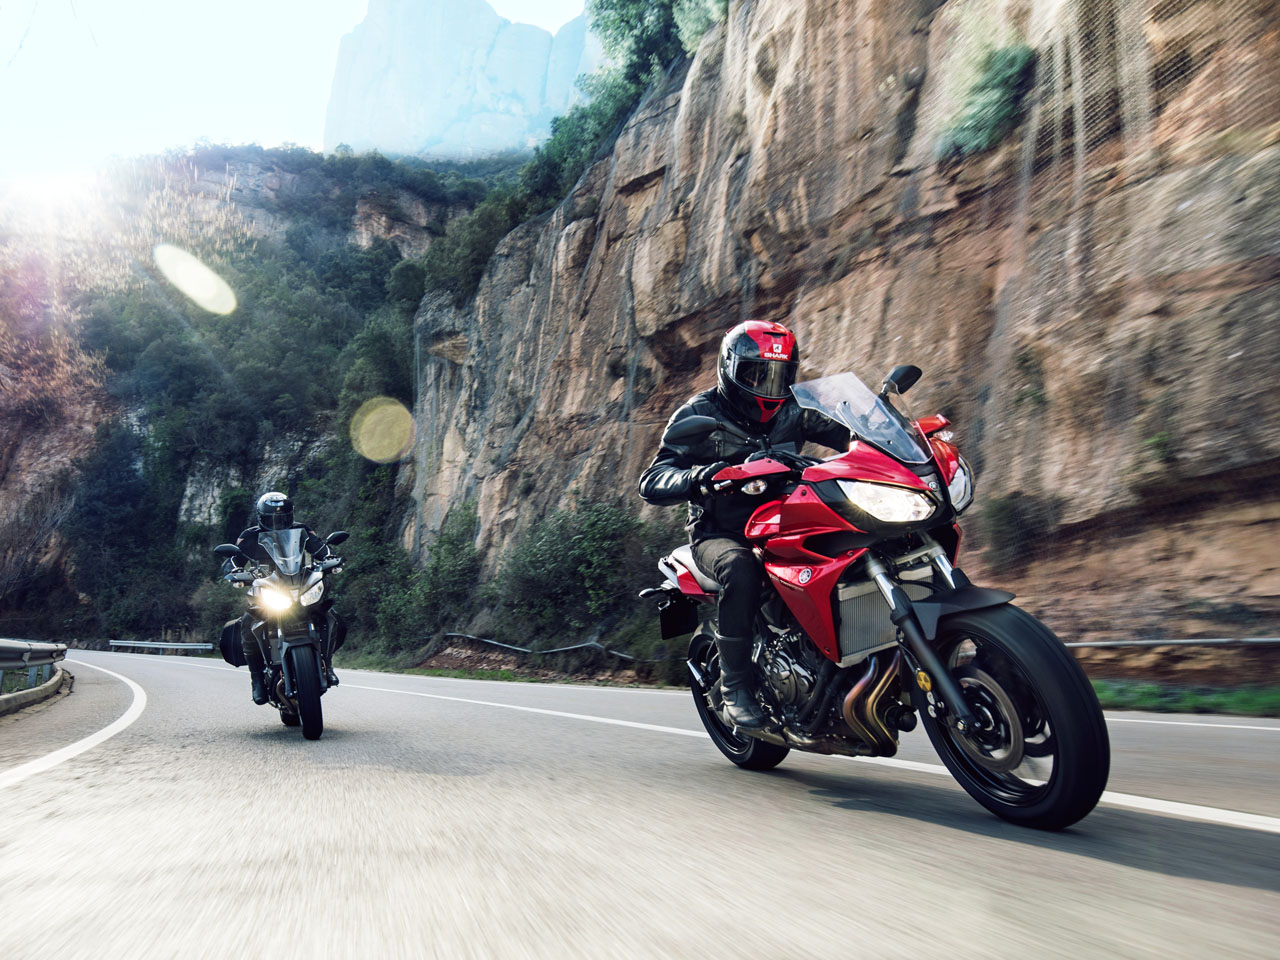 Yamaha Tracer 700motorcycle riding on the hill road